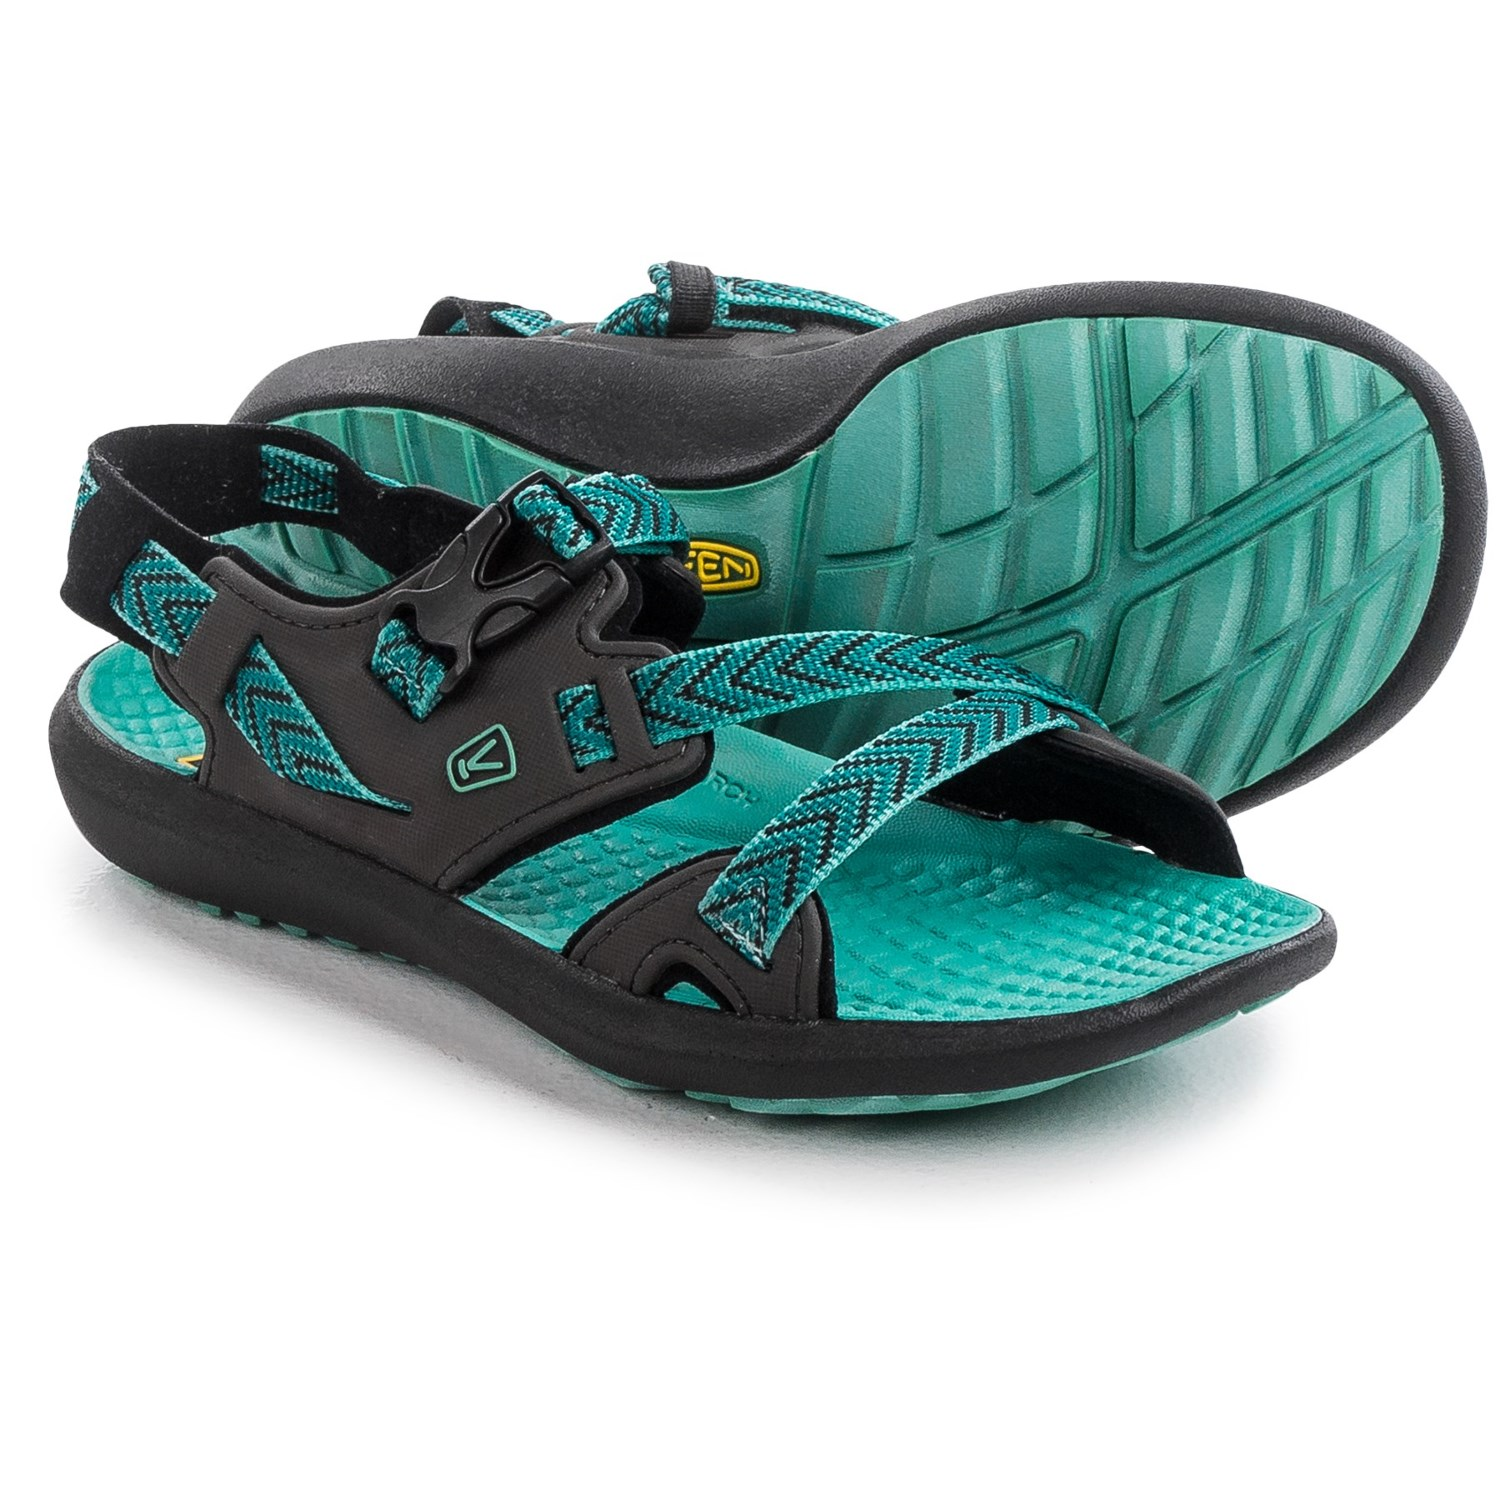 Womens sandals with arch support - Arch Support